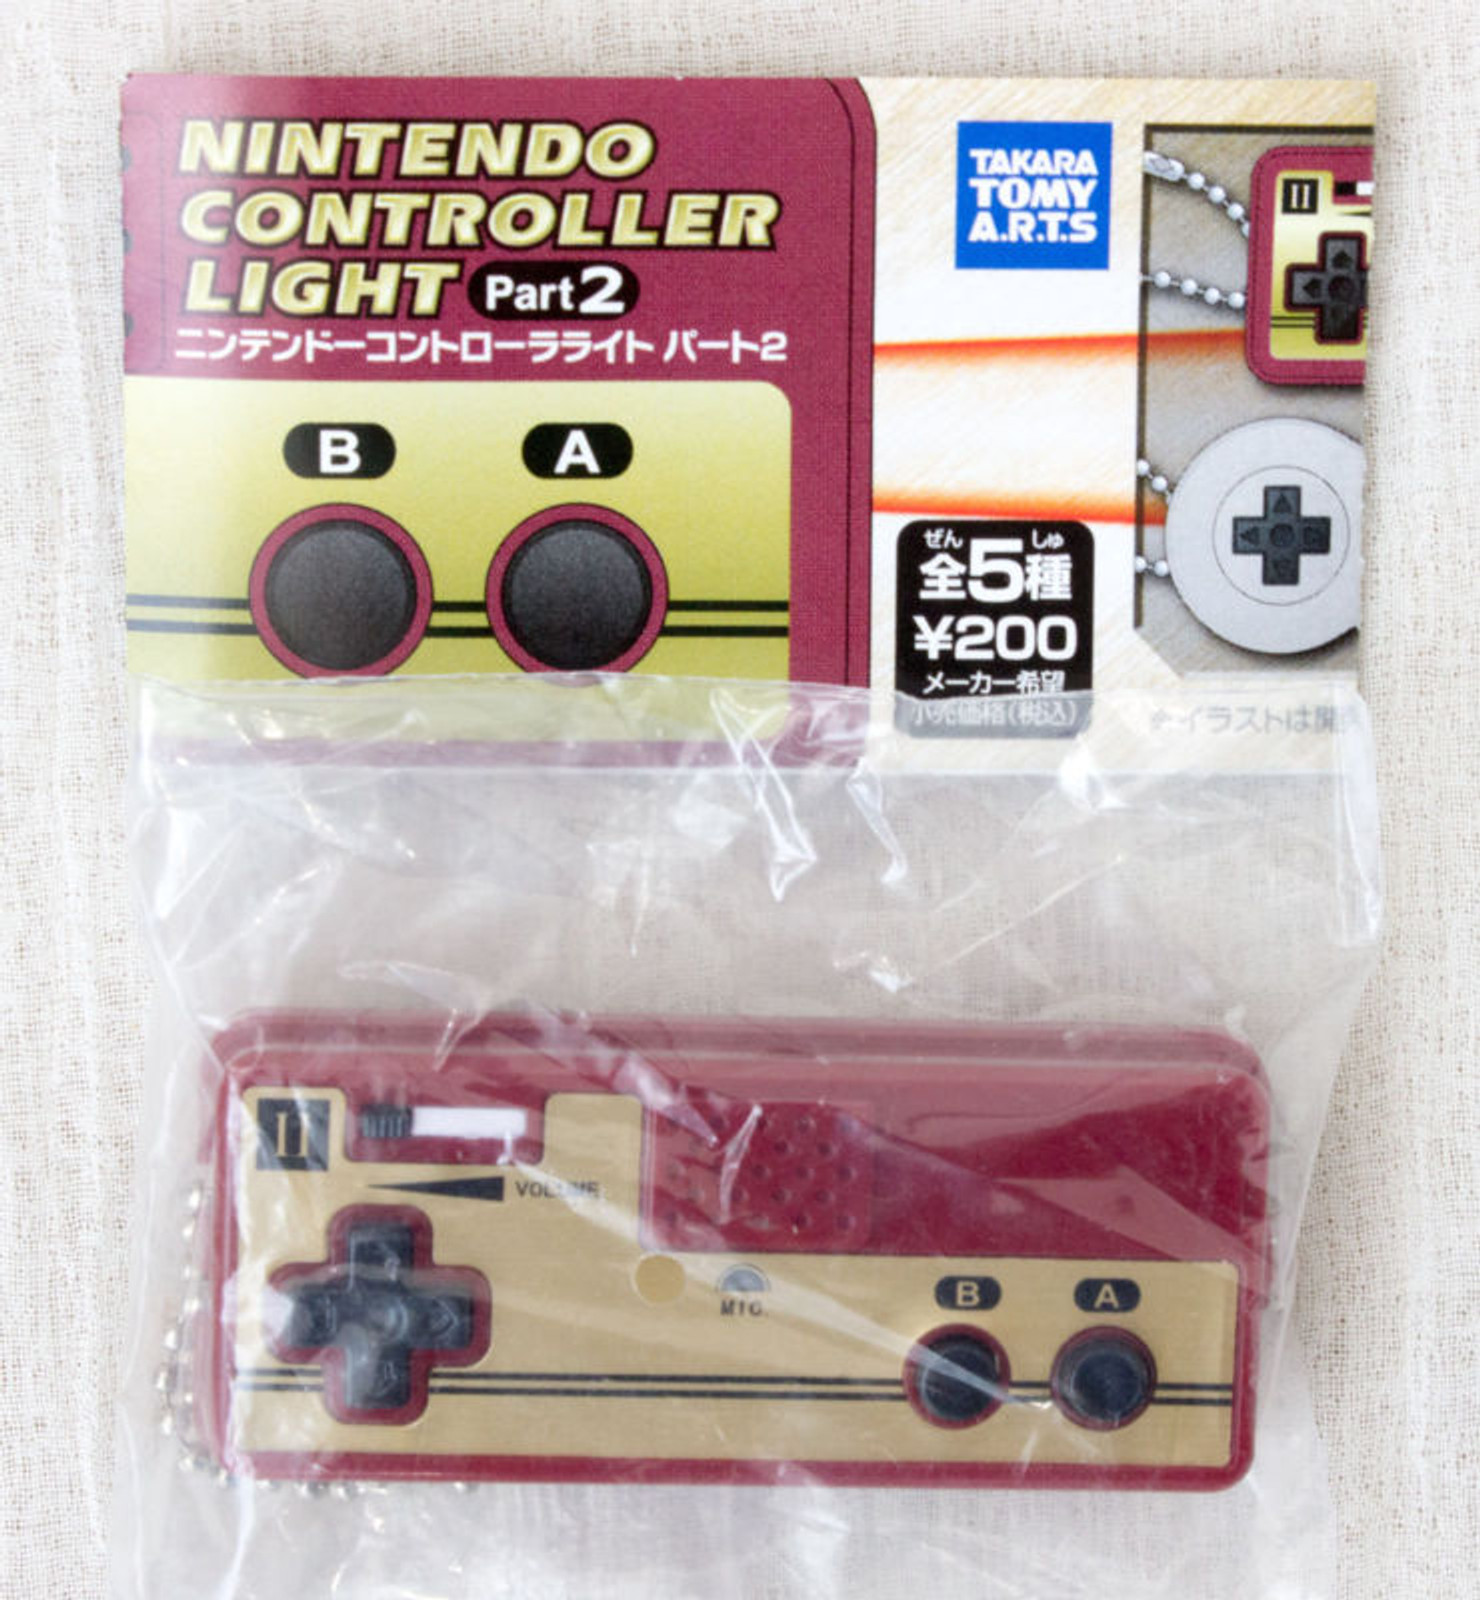 Nintendo Game Controller LED Light Figure Key Chain Famicom 2 NES JAPAN